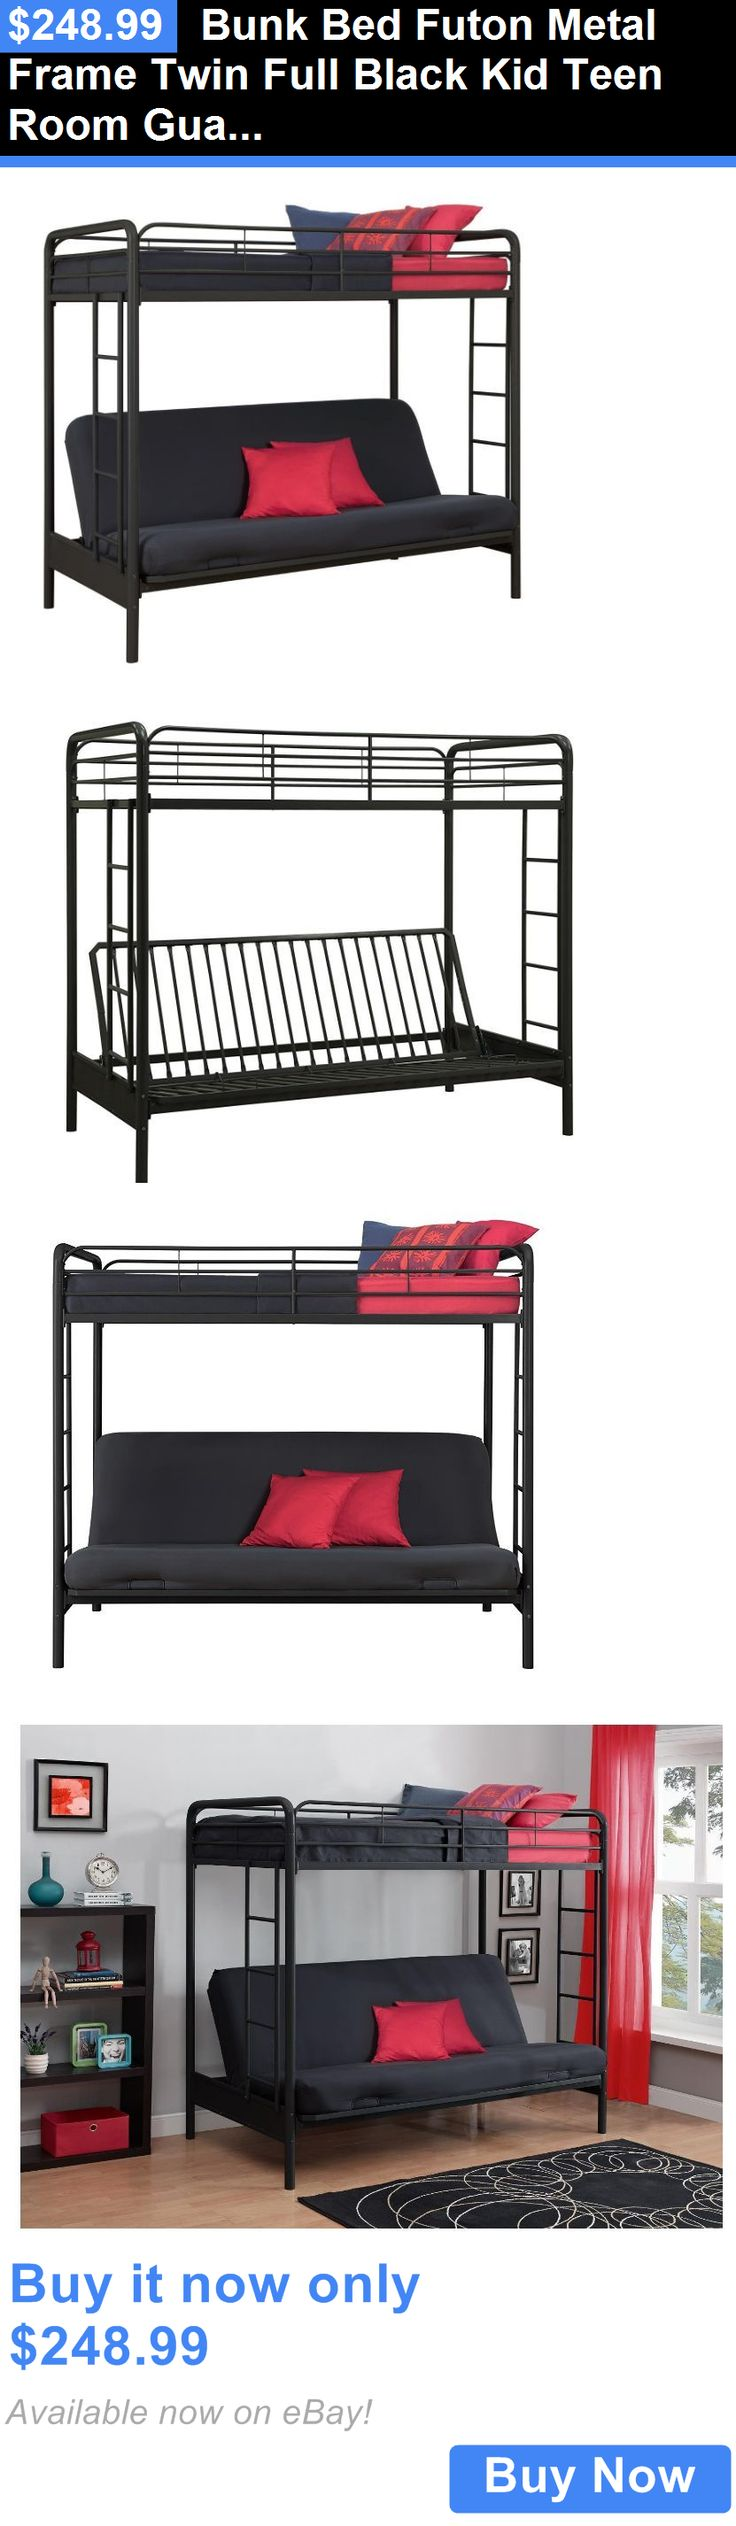 Kids Furniture: Bunk Bed Futon Metal Frame Twin Full Black Kid Teen Room Guardrail Ladder New BUY IT NOW ONLY: $248.99